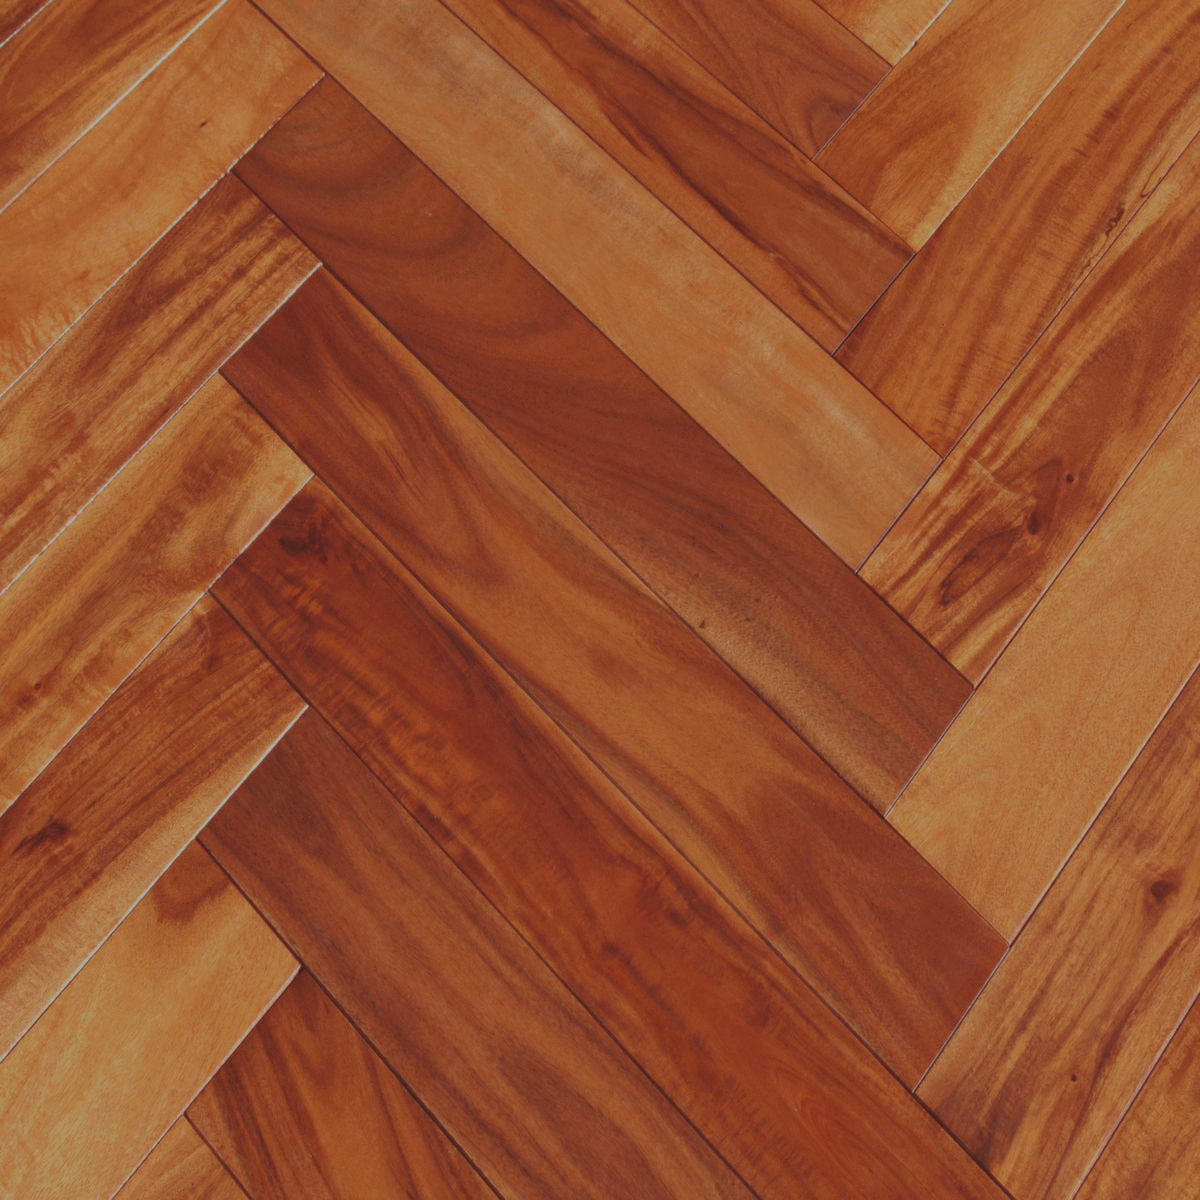 Acacia Golden Sagebrush Herringbone Hardwood Flooring